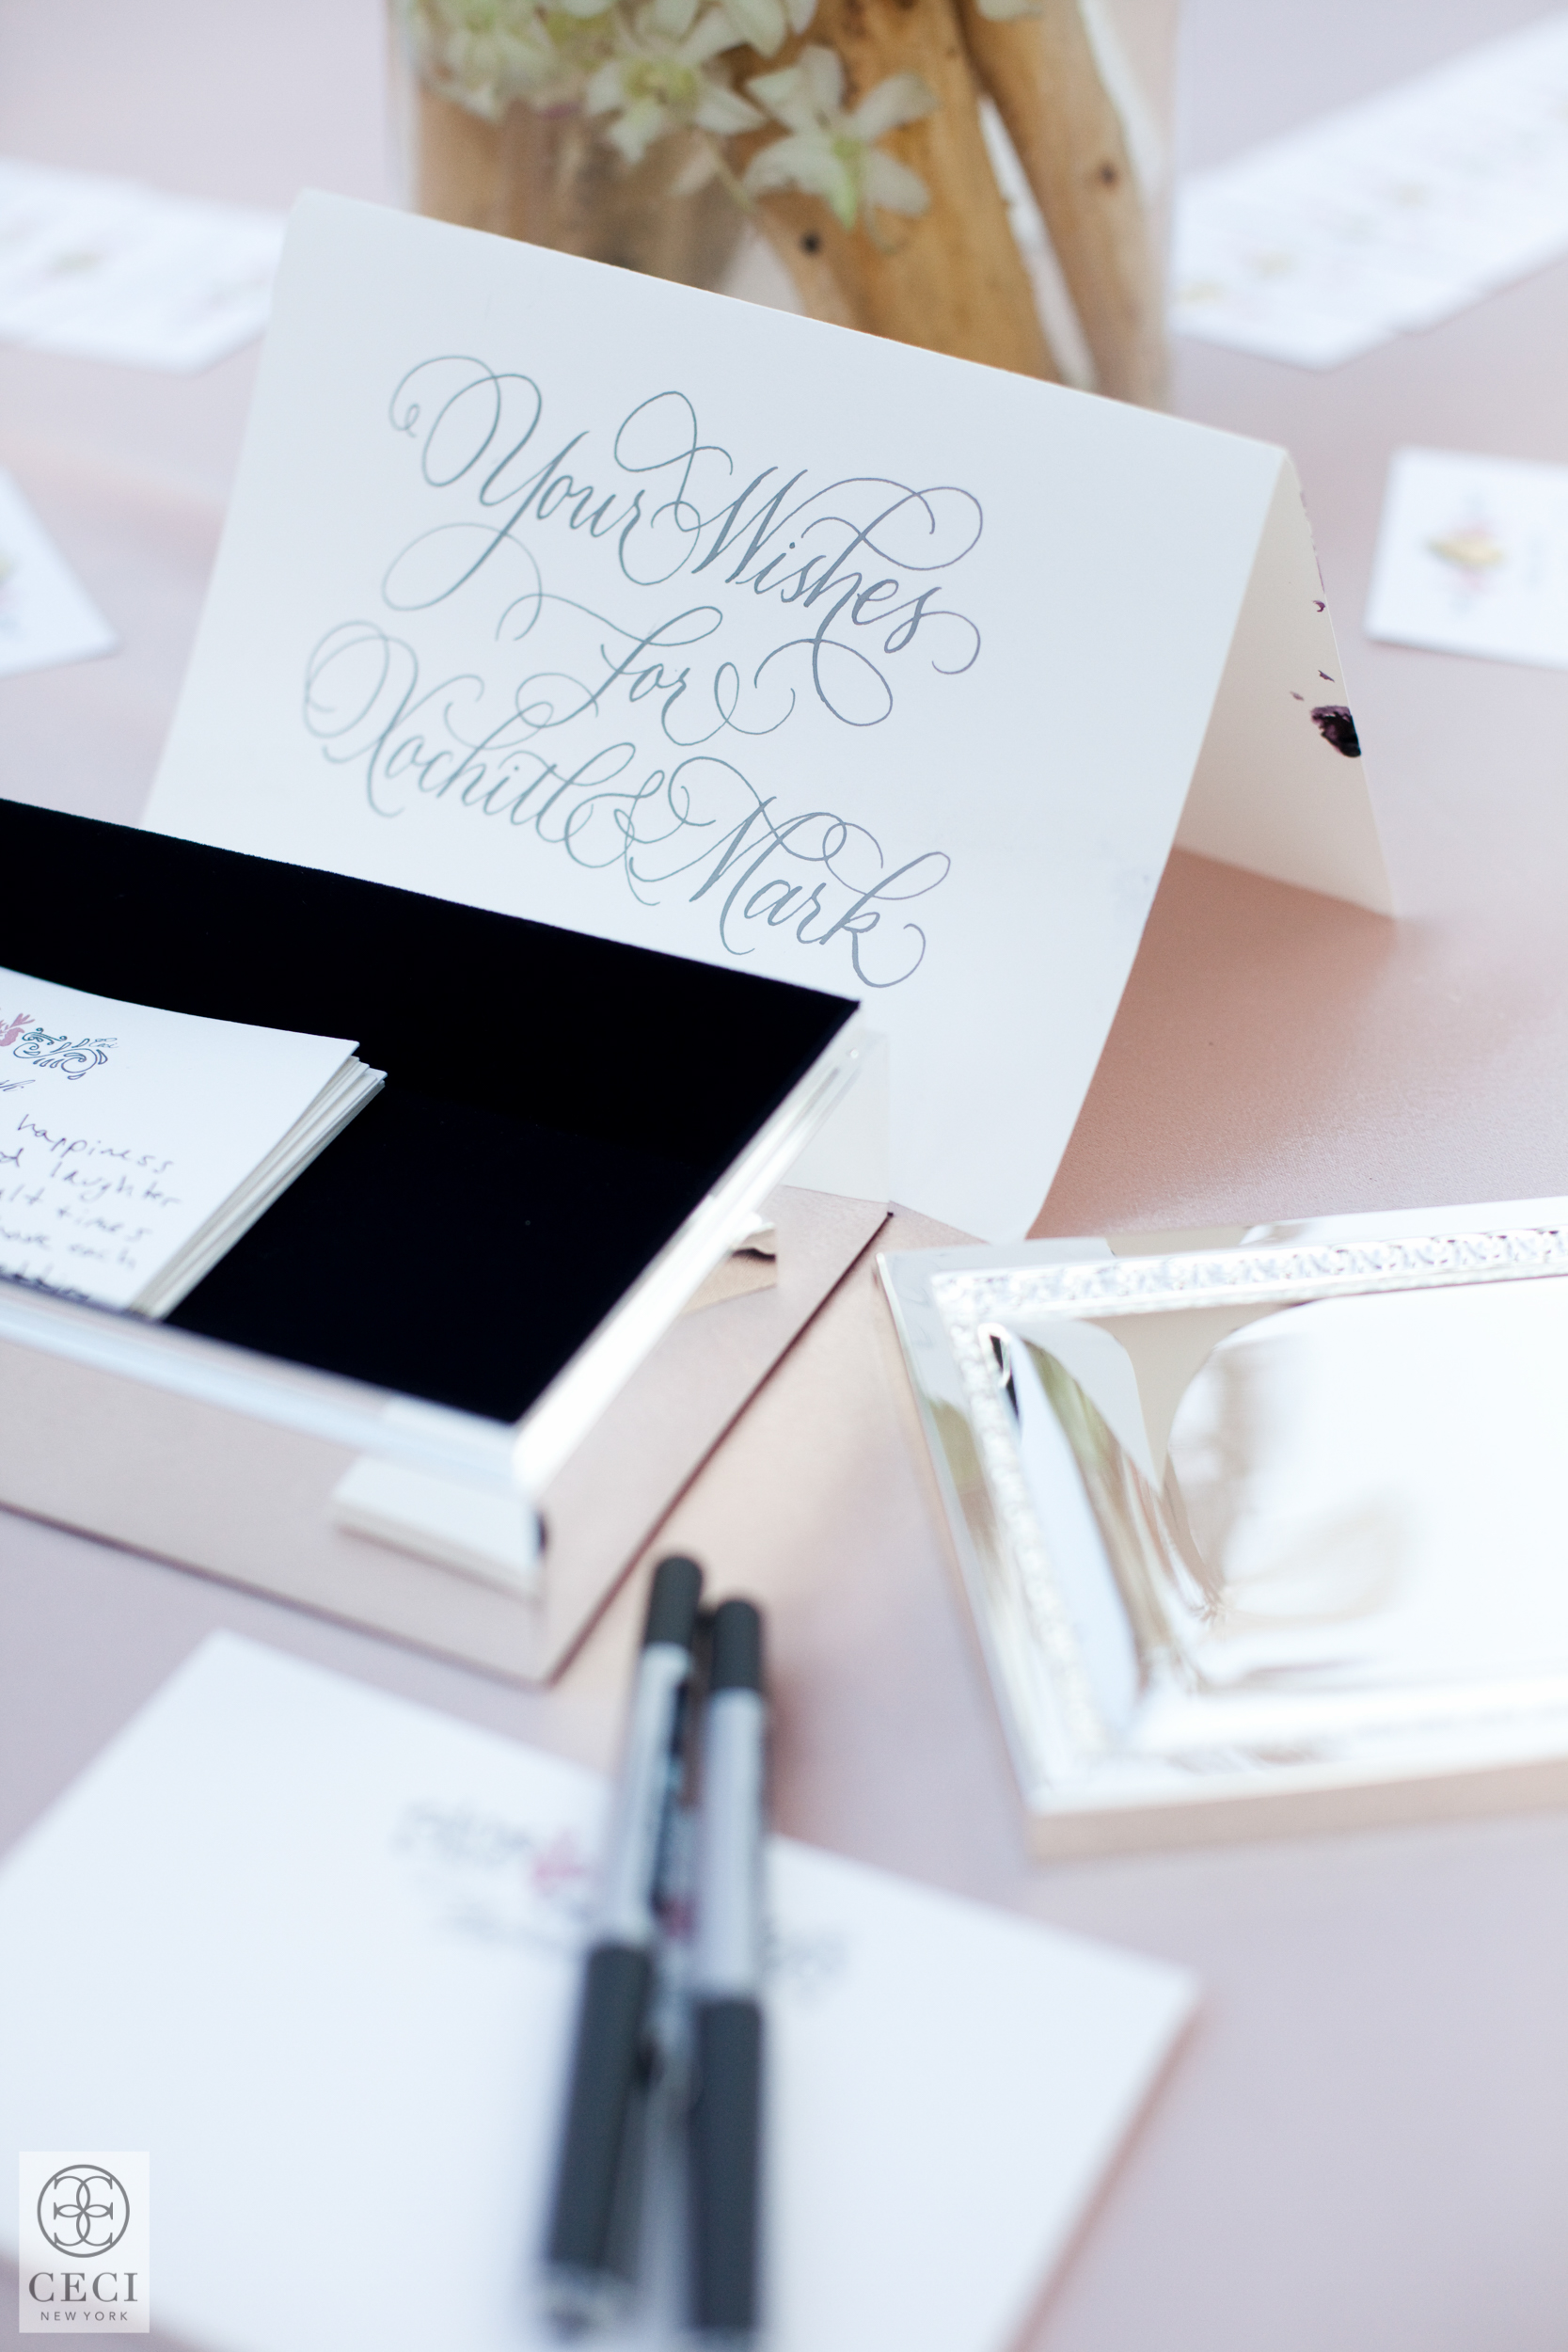 Ceci_New_York_Custom_Luxury_Wedding_LaserCut_Stationery_Personalized_Couture_Foil_Stamping_Mexico_Otomi_Chic_-14.jpg